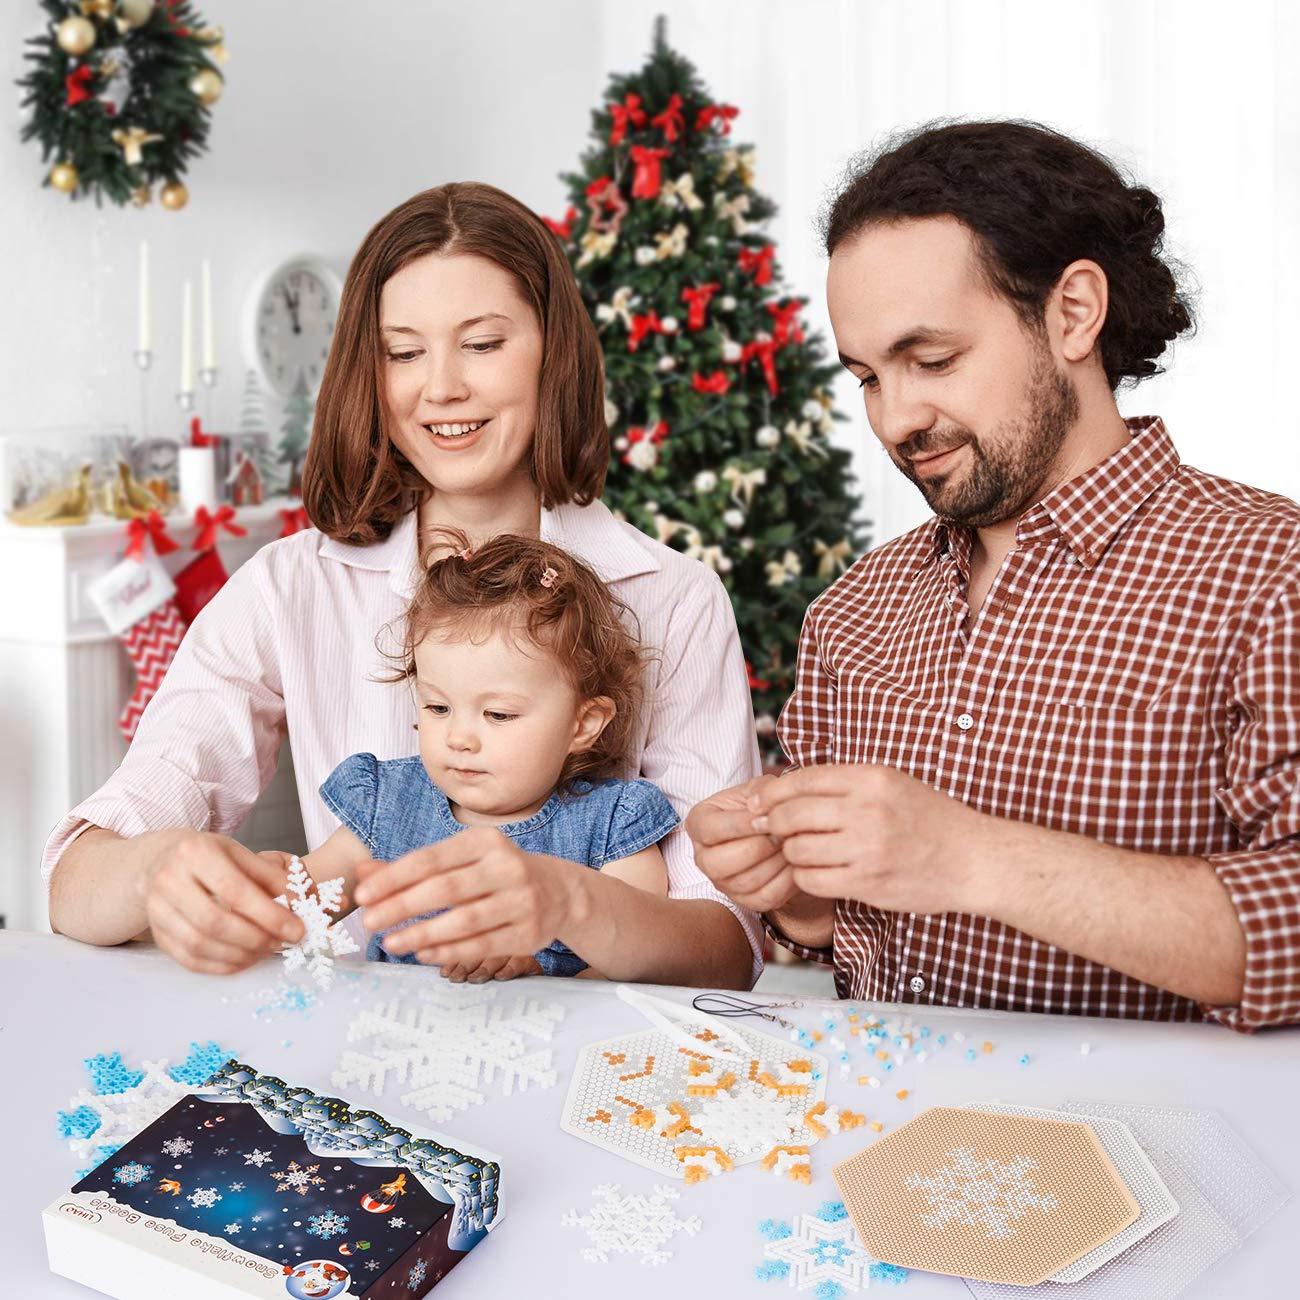 Made Snowflake Ornament Yourself Snowflakes Fuse Beads Kit Great Christmas Party Game Favor